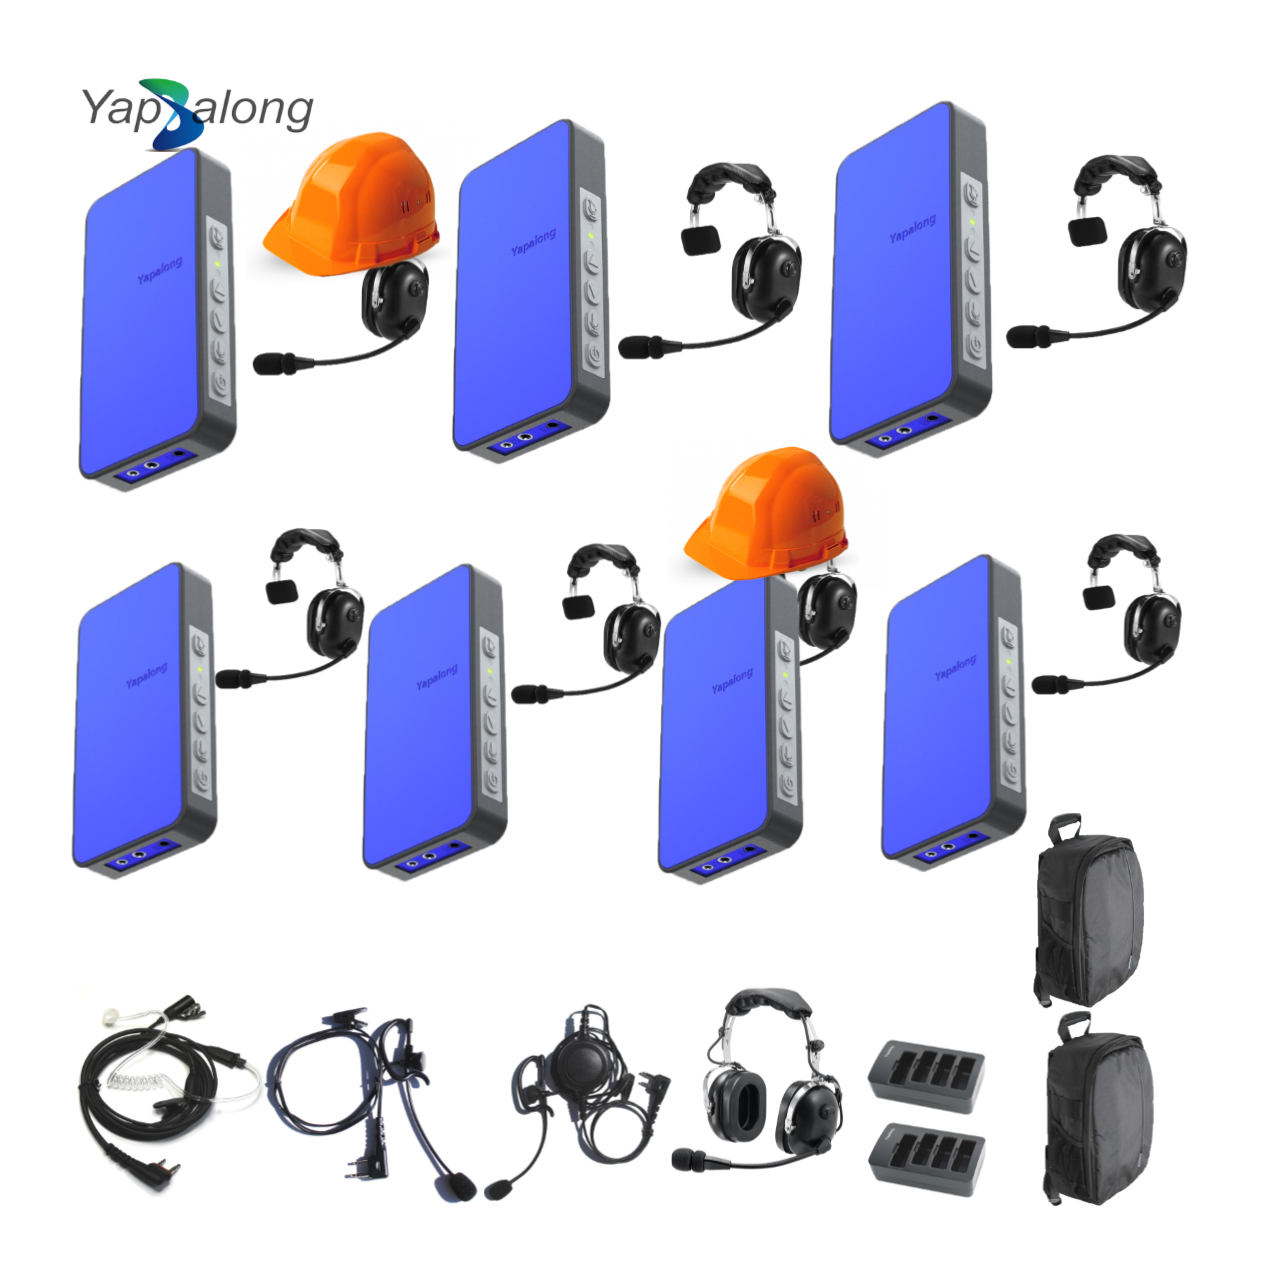 Yapalong 5000 (7-User) Industriale Complete Set Intercom Systems Intercom Systems